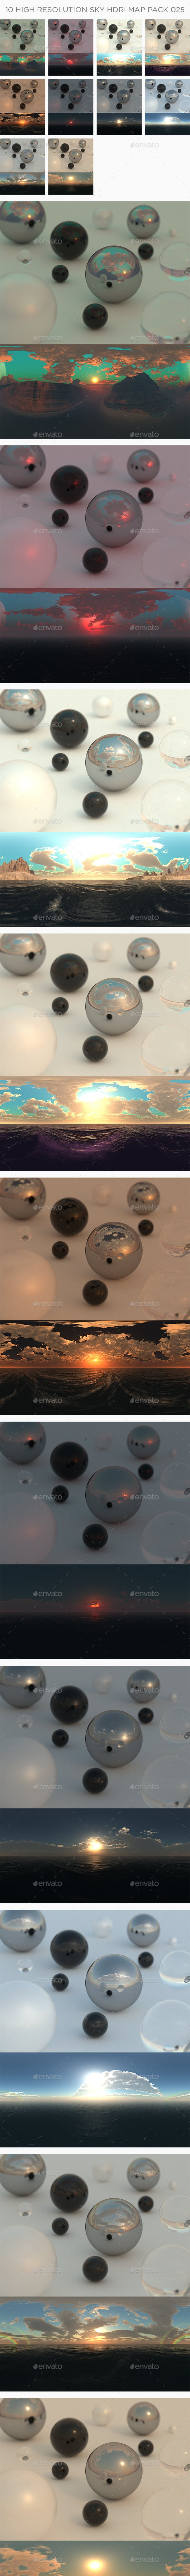 10 High Resolution Sky HDRi Maps Pack 025 - 3DOcean Item for Sale